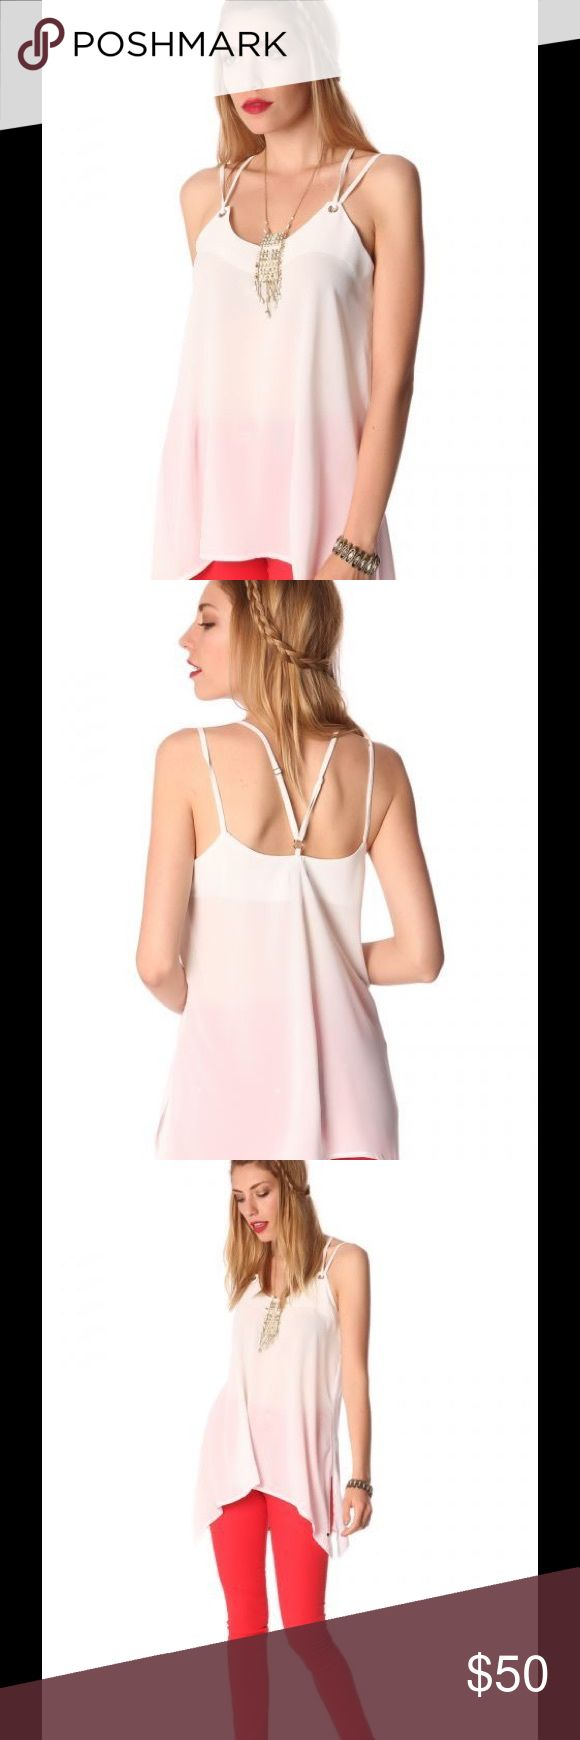 Long White Cami Top Round neck with double straps and round details. Side slits and asymmetrical hem. 100% Polyester Q2 for Fab50Fashions Tops Camisoles